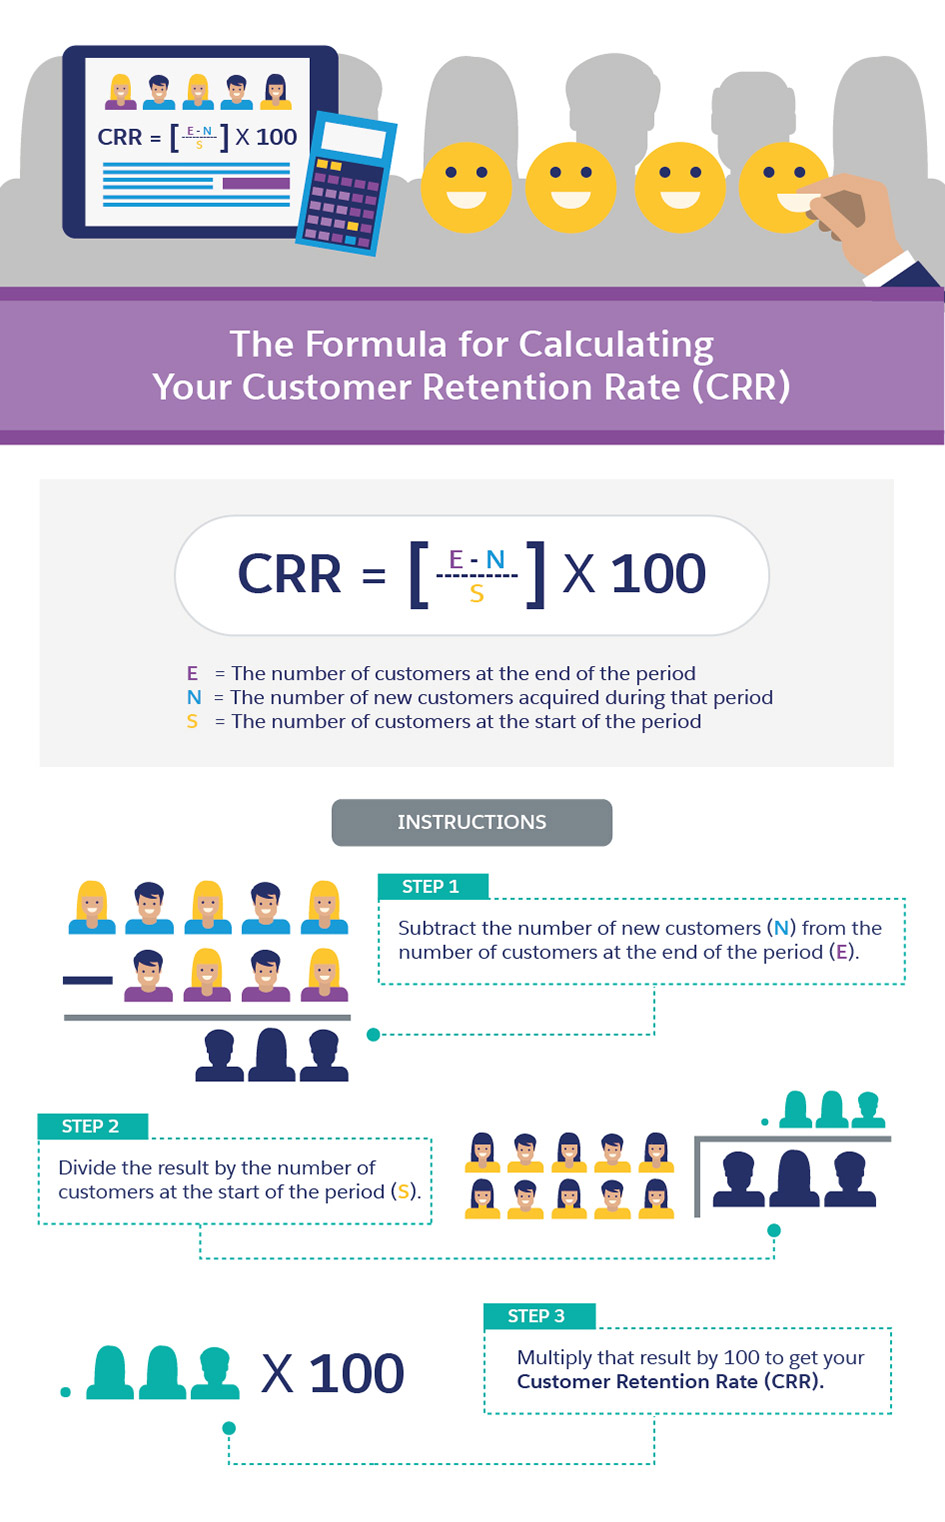 The Formula for Calculating your Retention Rate